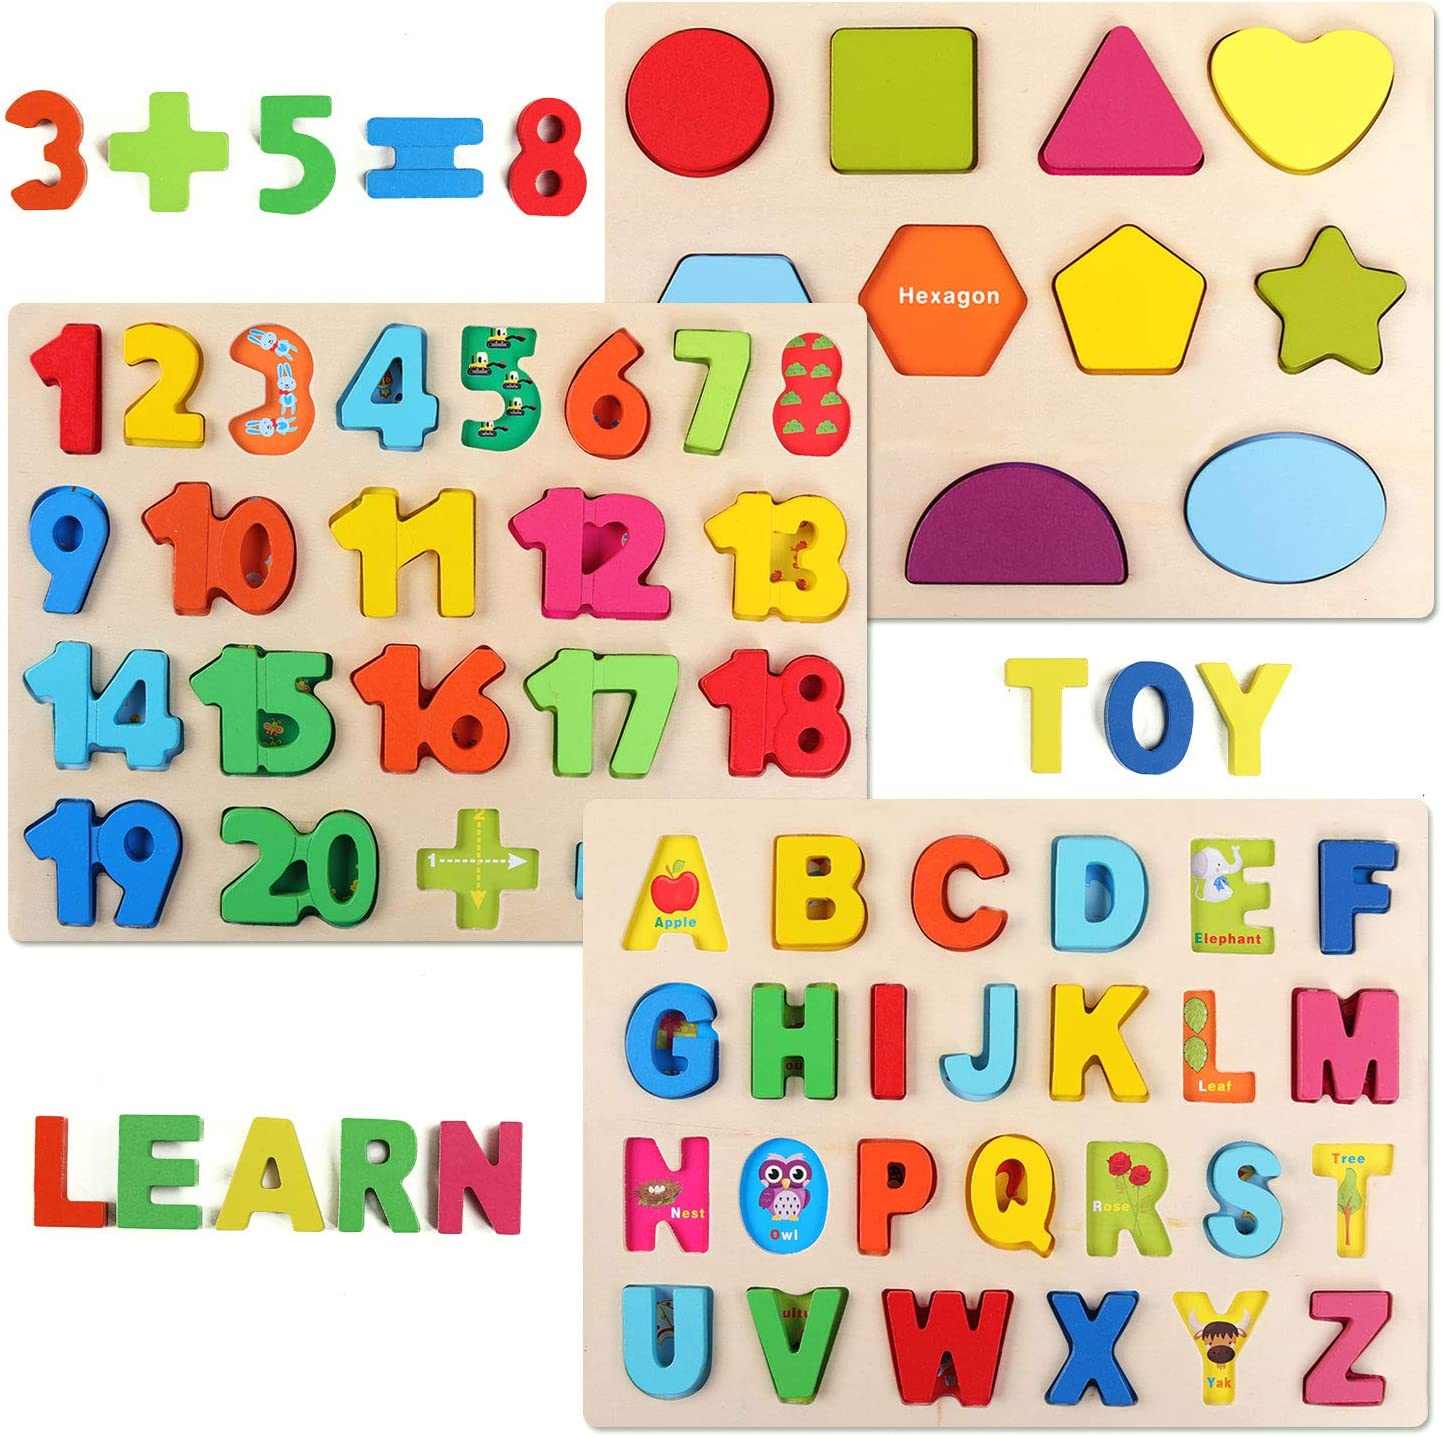 3 in 1,Montessor Puzzle for Toddlers Wooden Puzzles for Toddlers Wooden Alphabet Number Shape ABC Name Puzzles Toddler Learning Puzzle Toys for Kids 2-6 Years Old